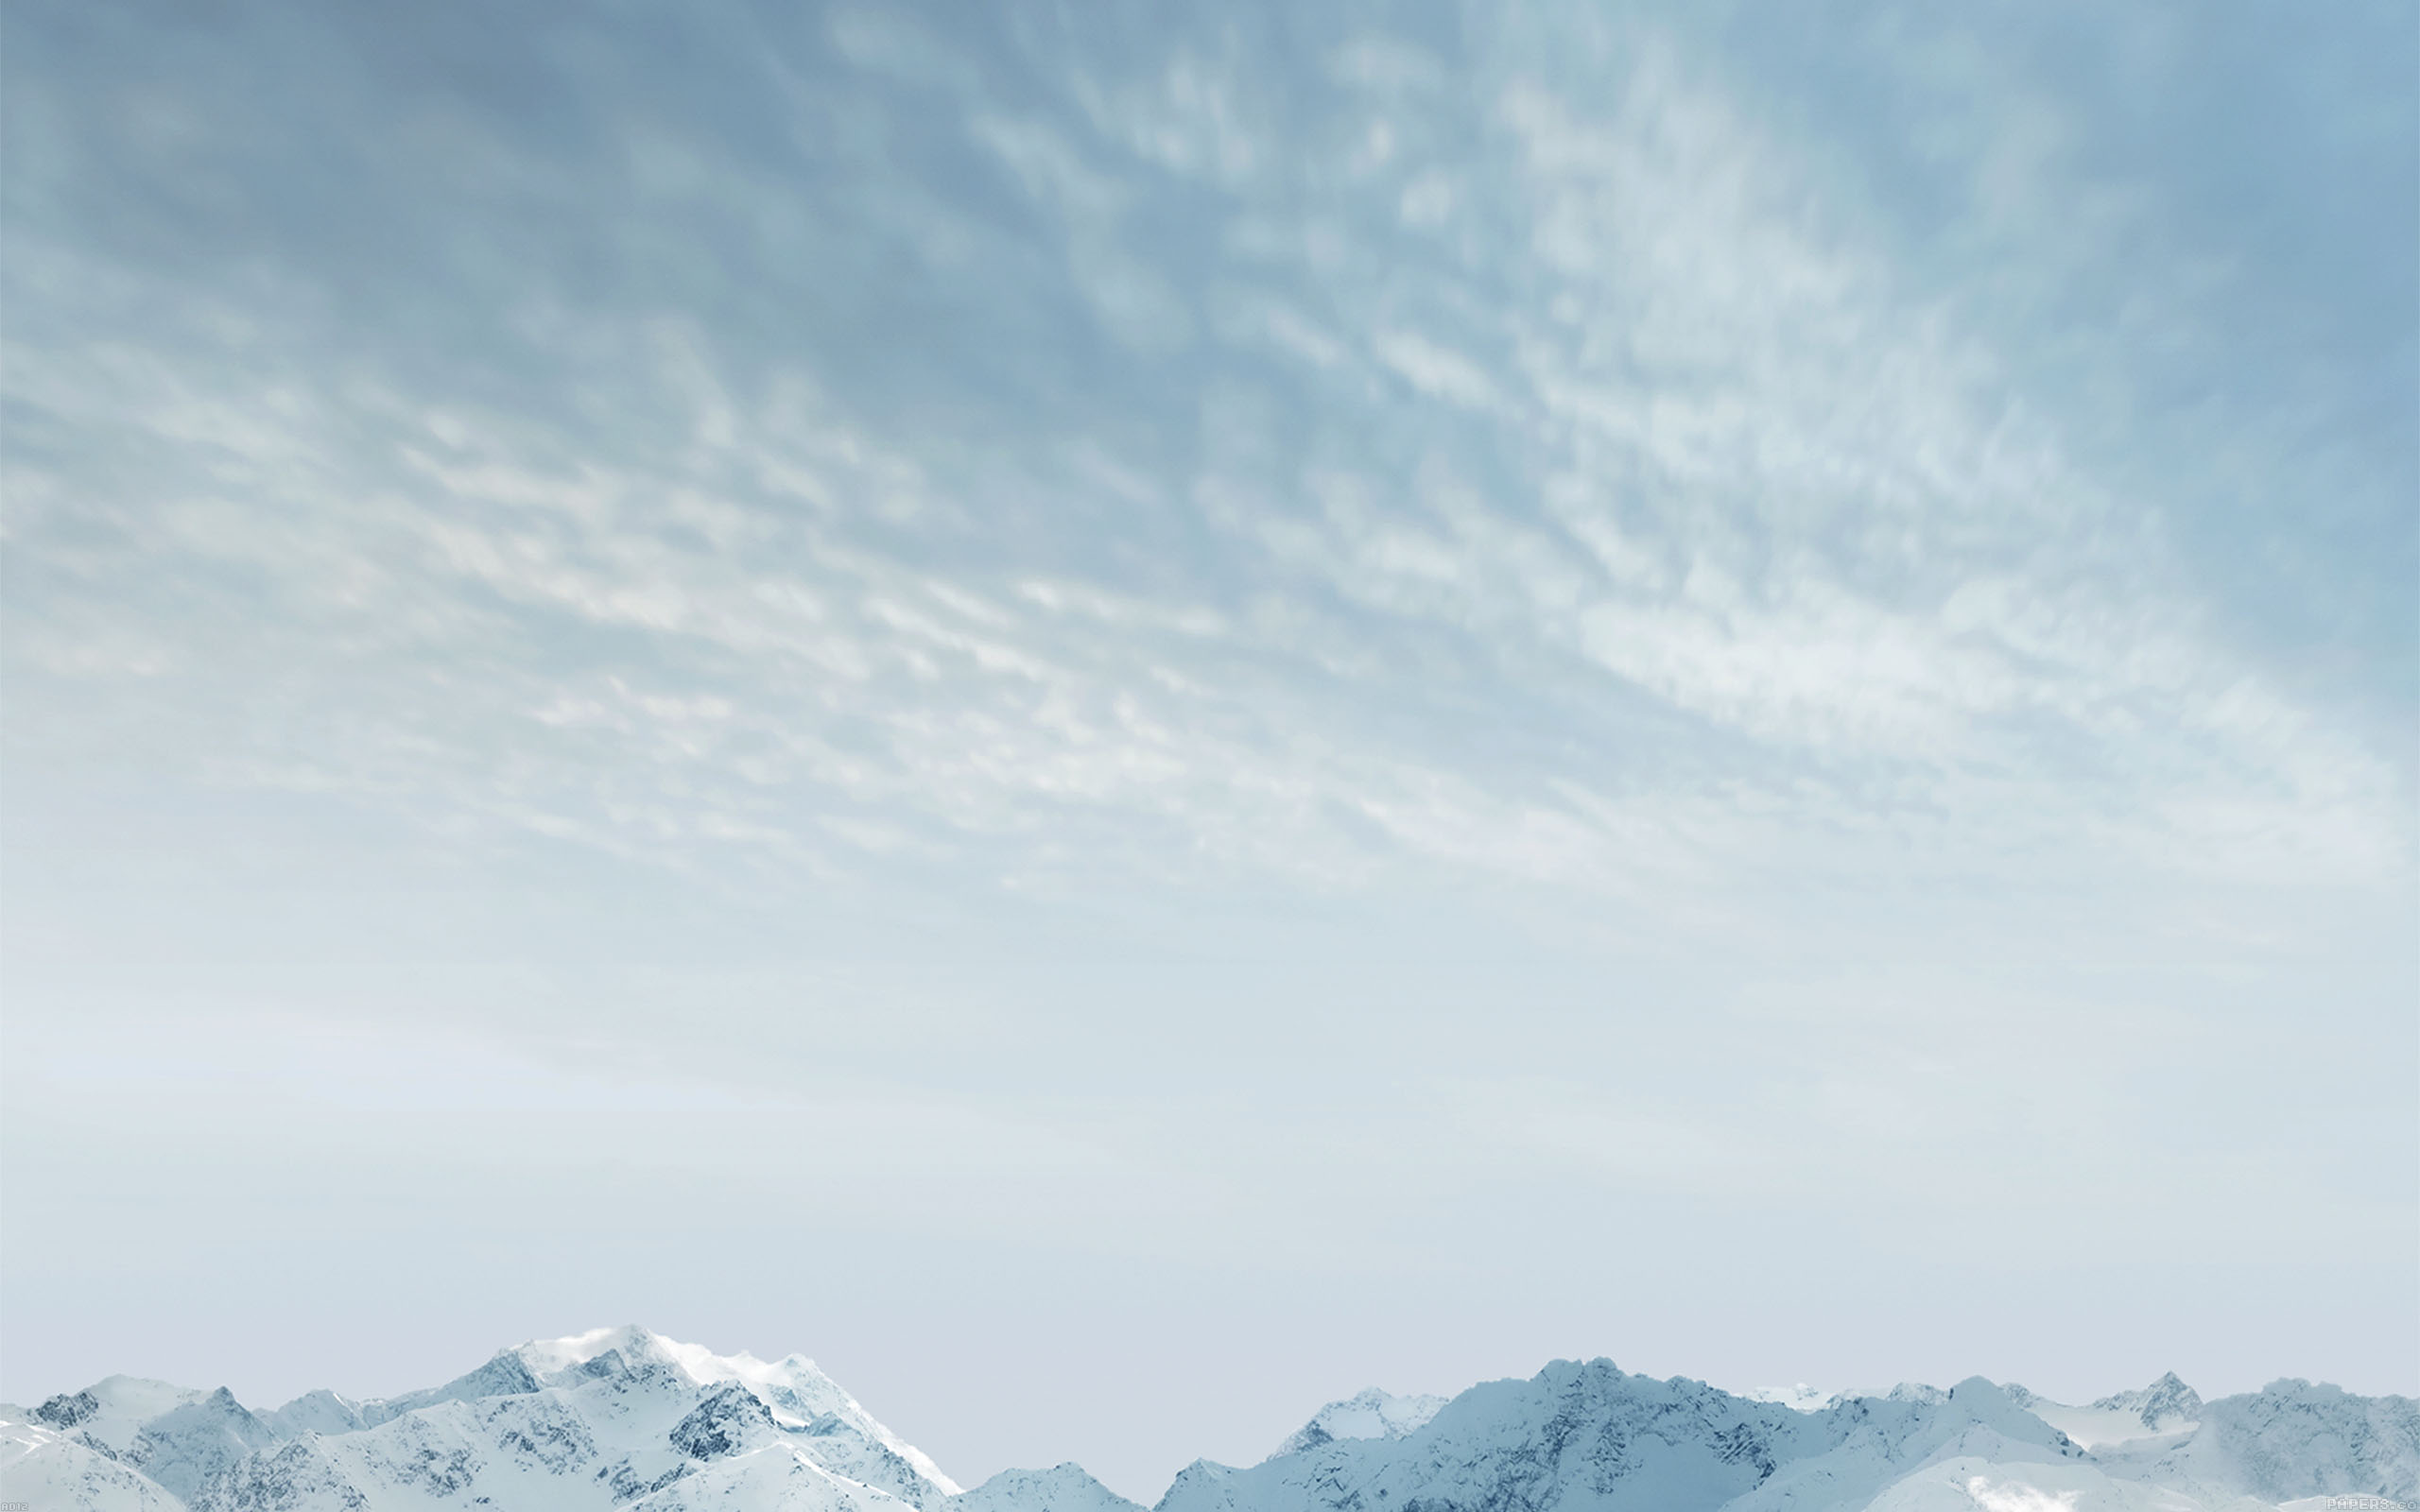 Ad02 Wallpaper Apple Ios8 Iphone6 Plus: Ad12-wallpaper-snow-mountain-ios8-iphone6-plus-official